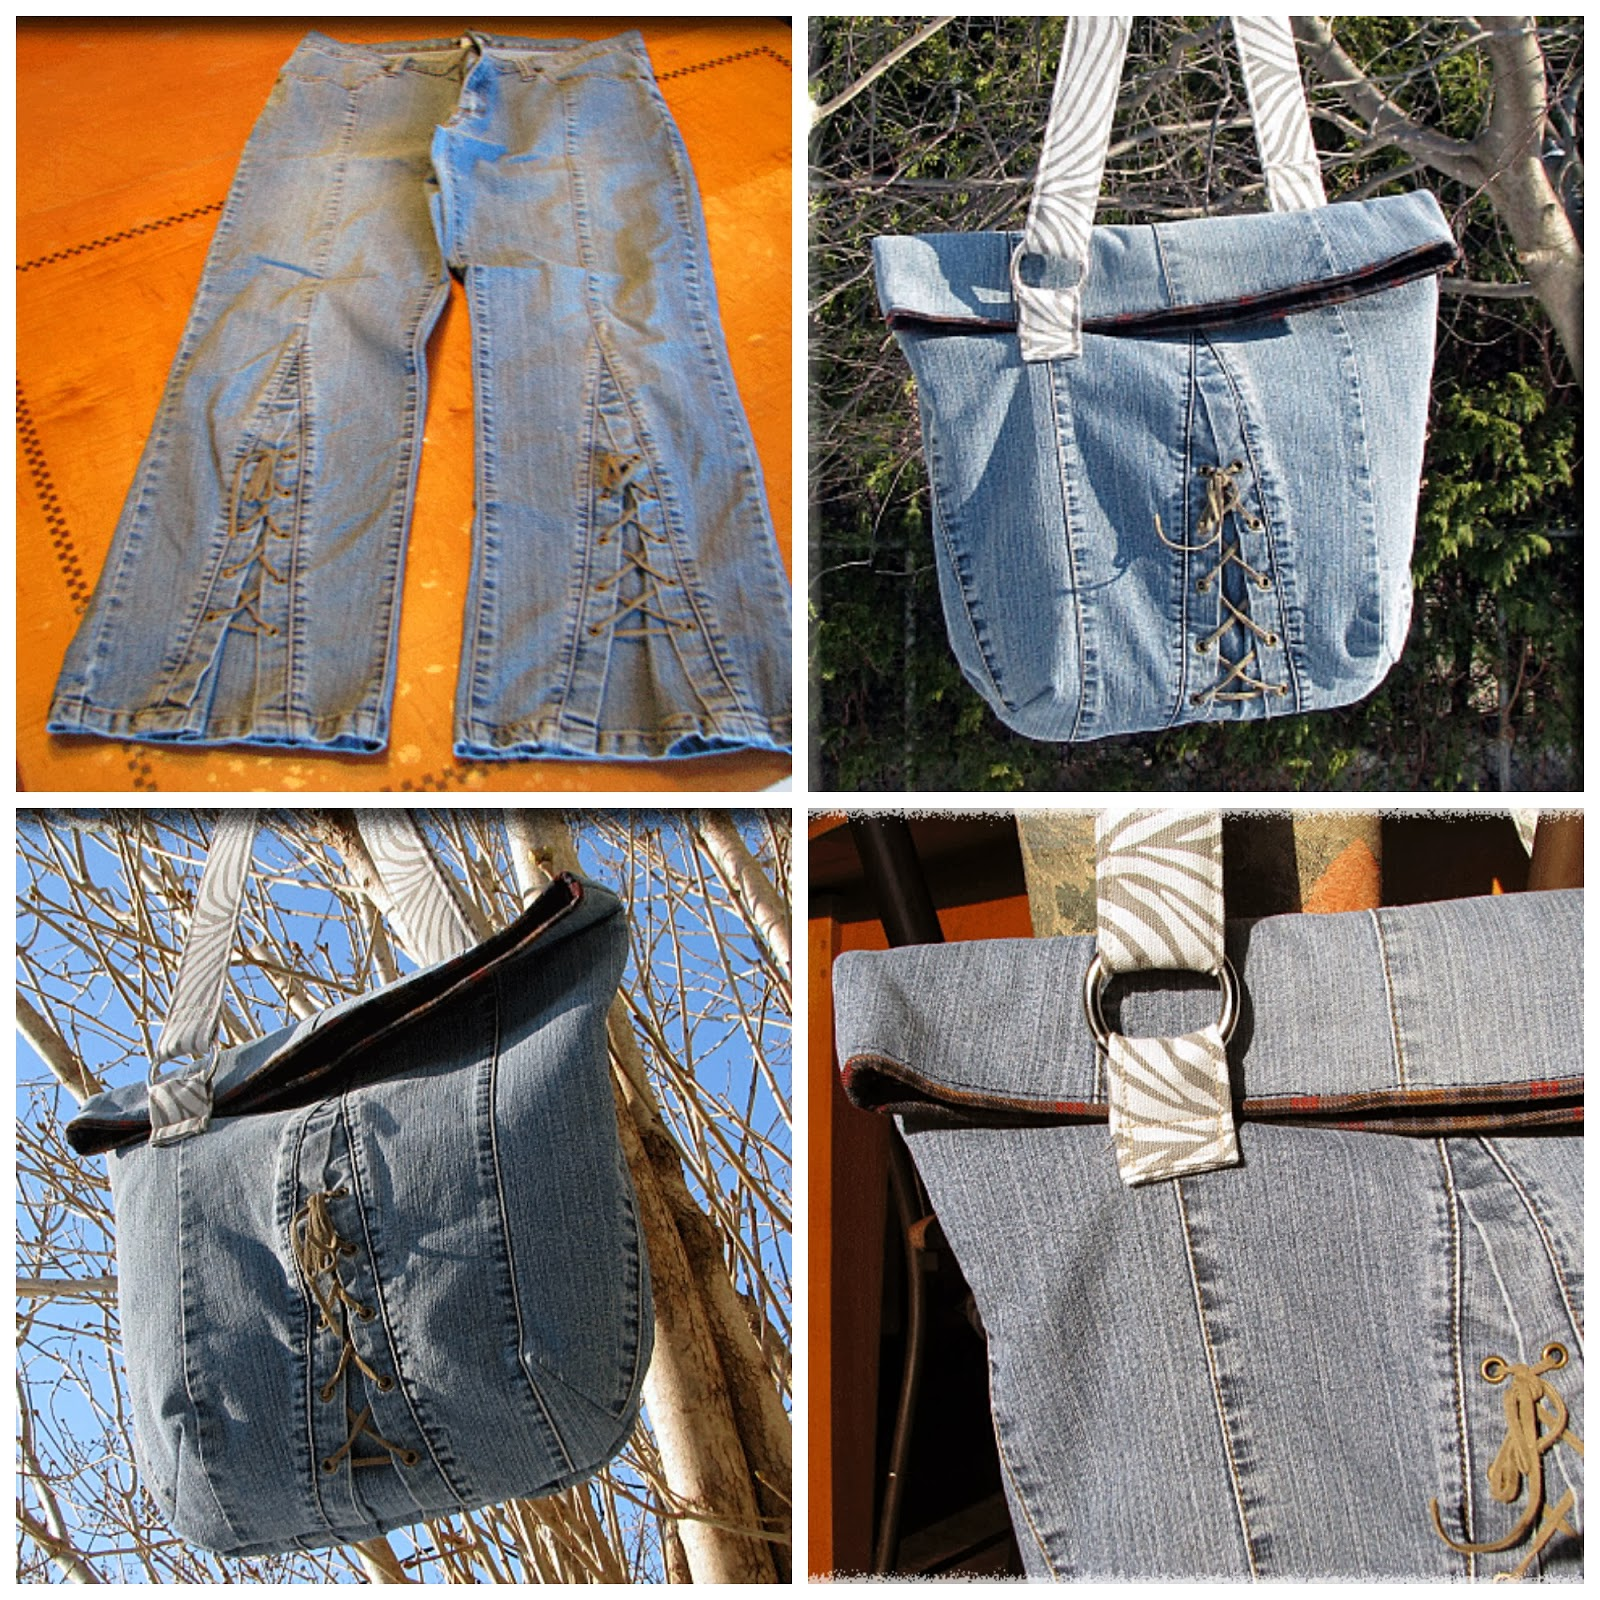 Mrs H - the blog: Jeans upcycle pattern hack- The Sling bag